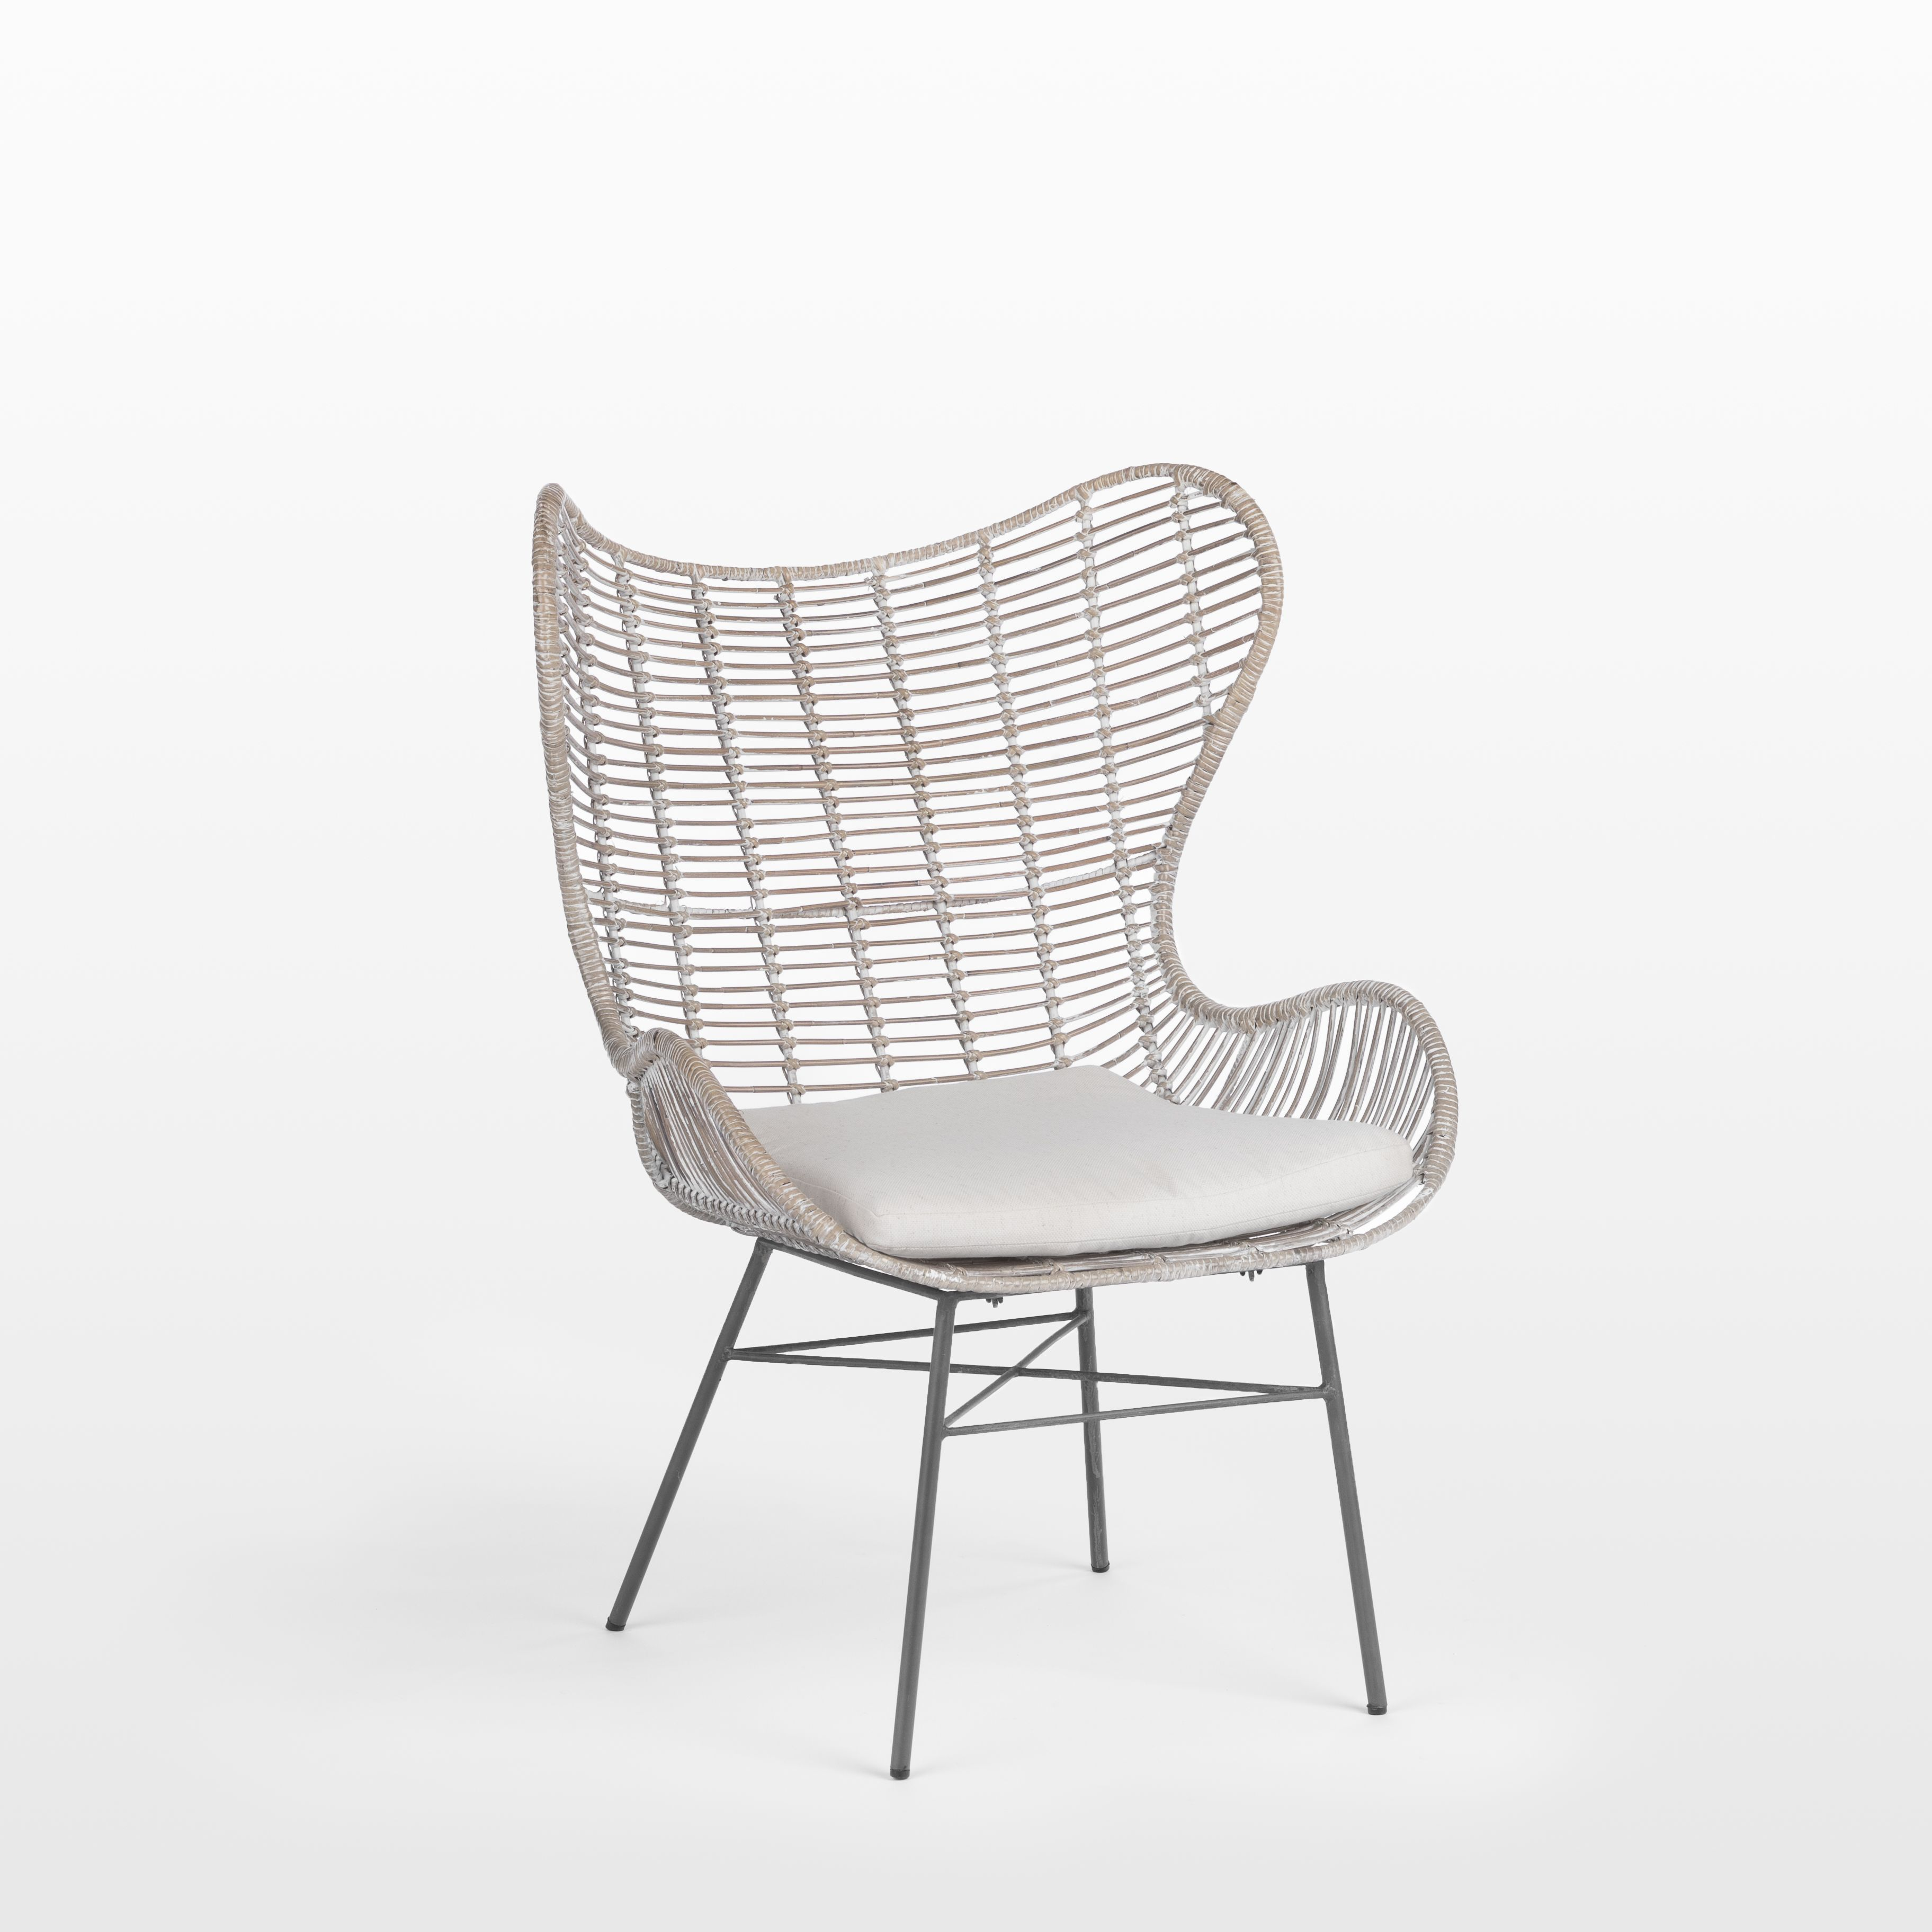 Milo Chair (With images) Milo chairs, Rattan lounge